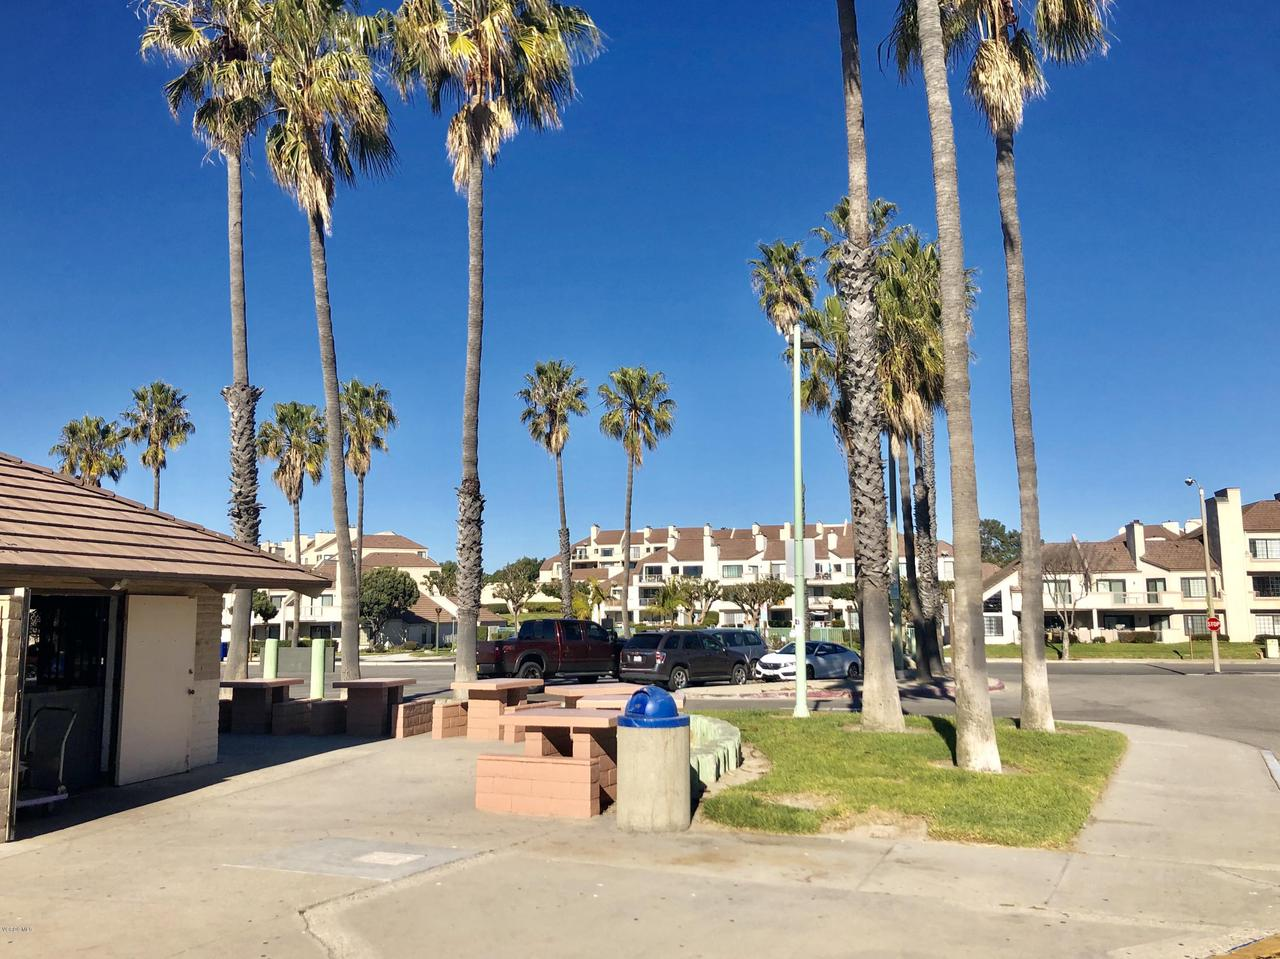 707 ISLAND VIEW, Port Hueneme, CA 93041 - CONDOS VIEW FROM THE BEACH